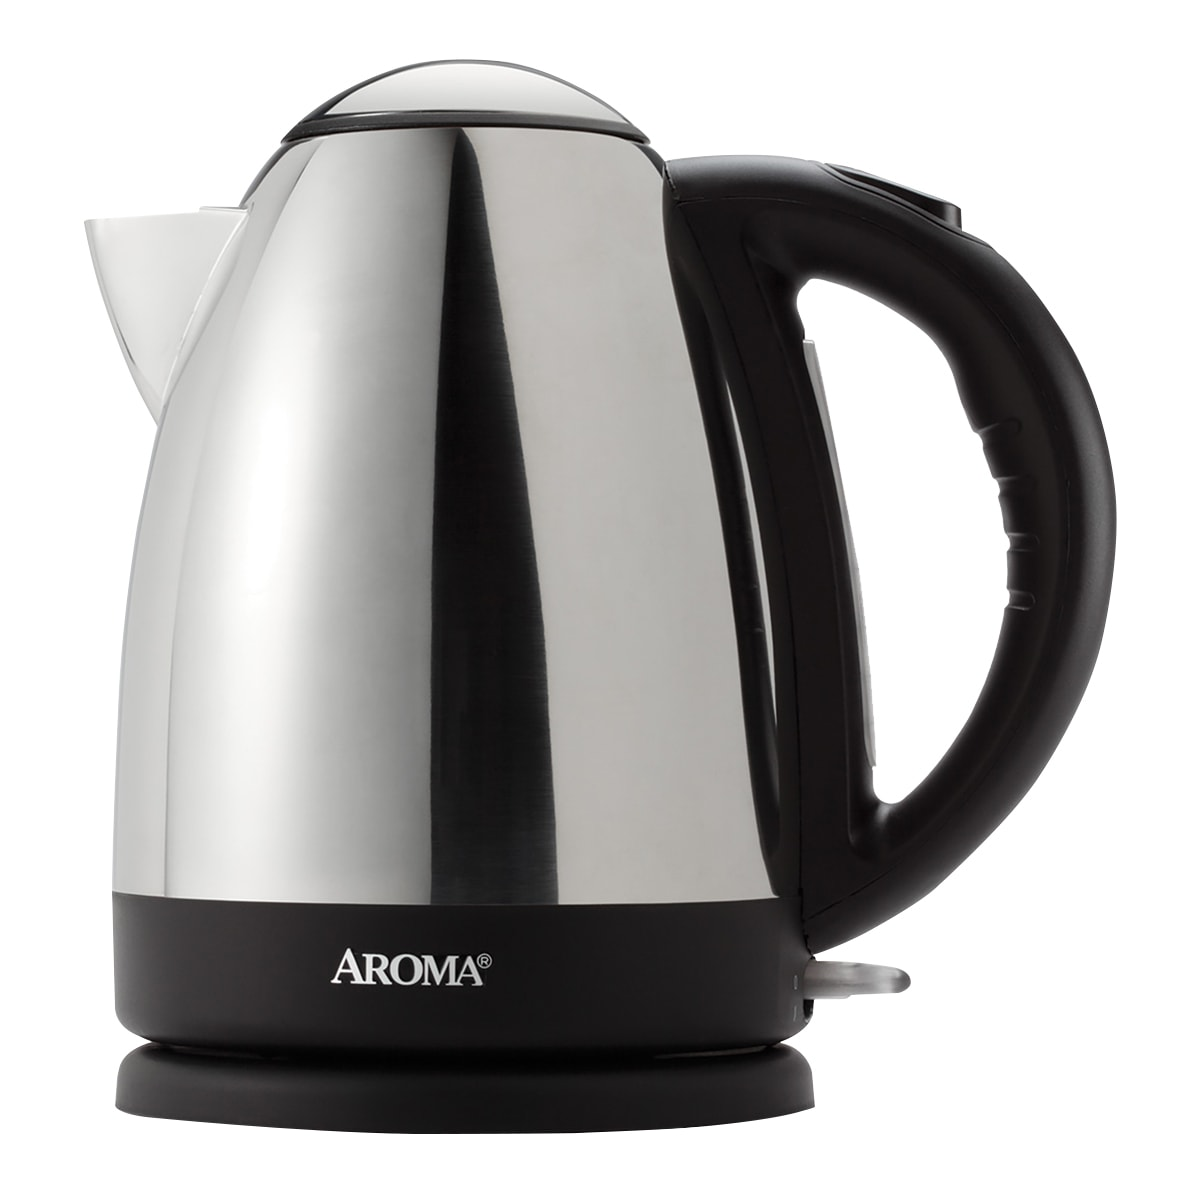 AROMA 1.7L Electric Stainless Steel Water Kettle (2 Year Manufacturer Warranty)